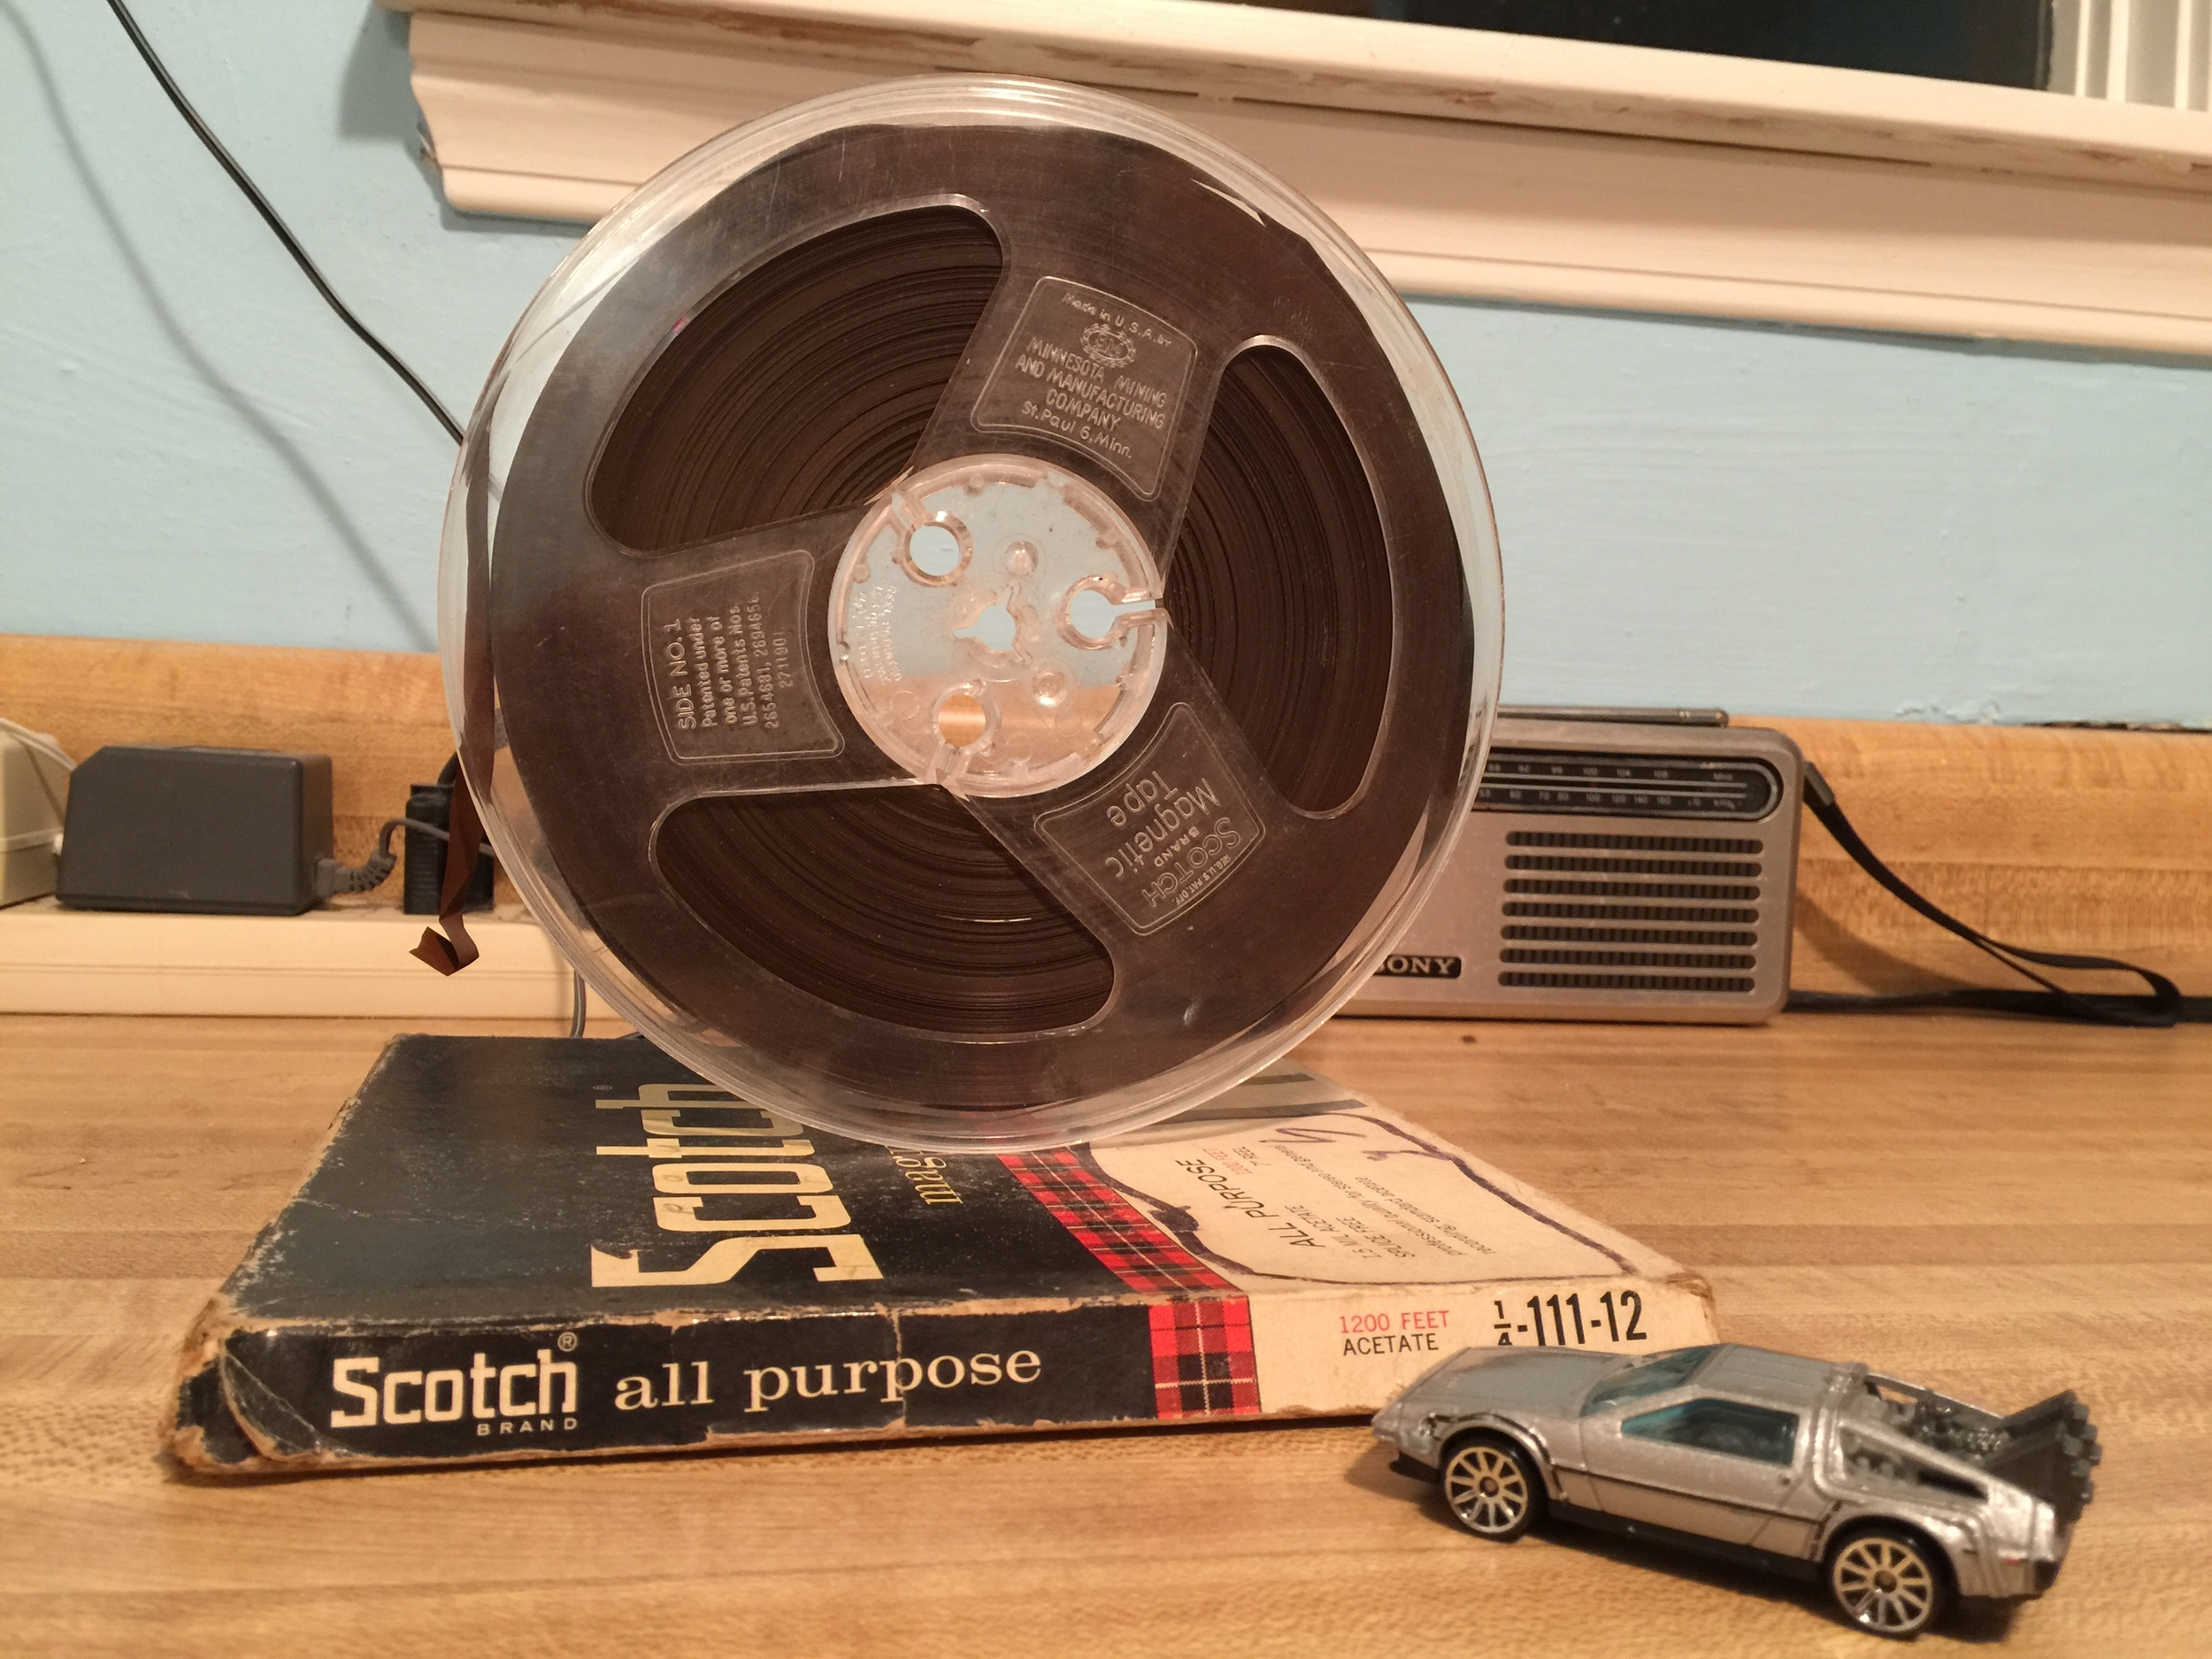 Paul's reel tape containing this Radio Netherland's recording